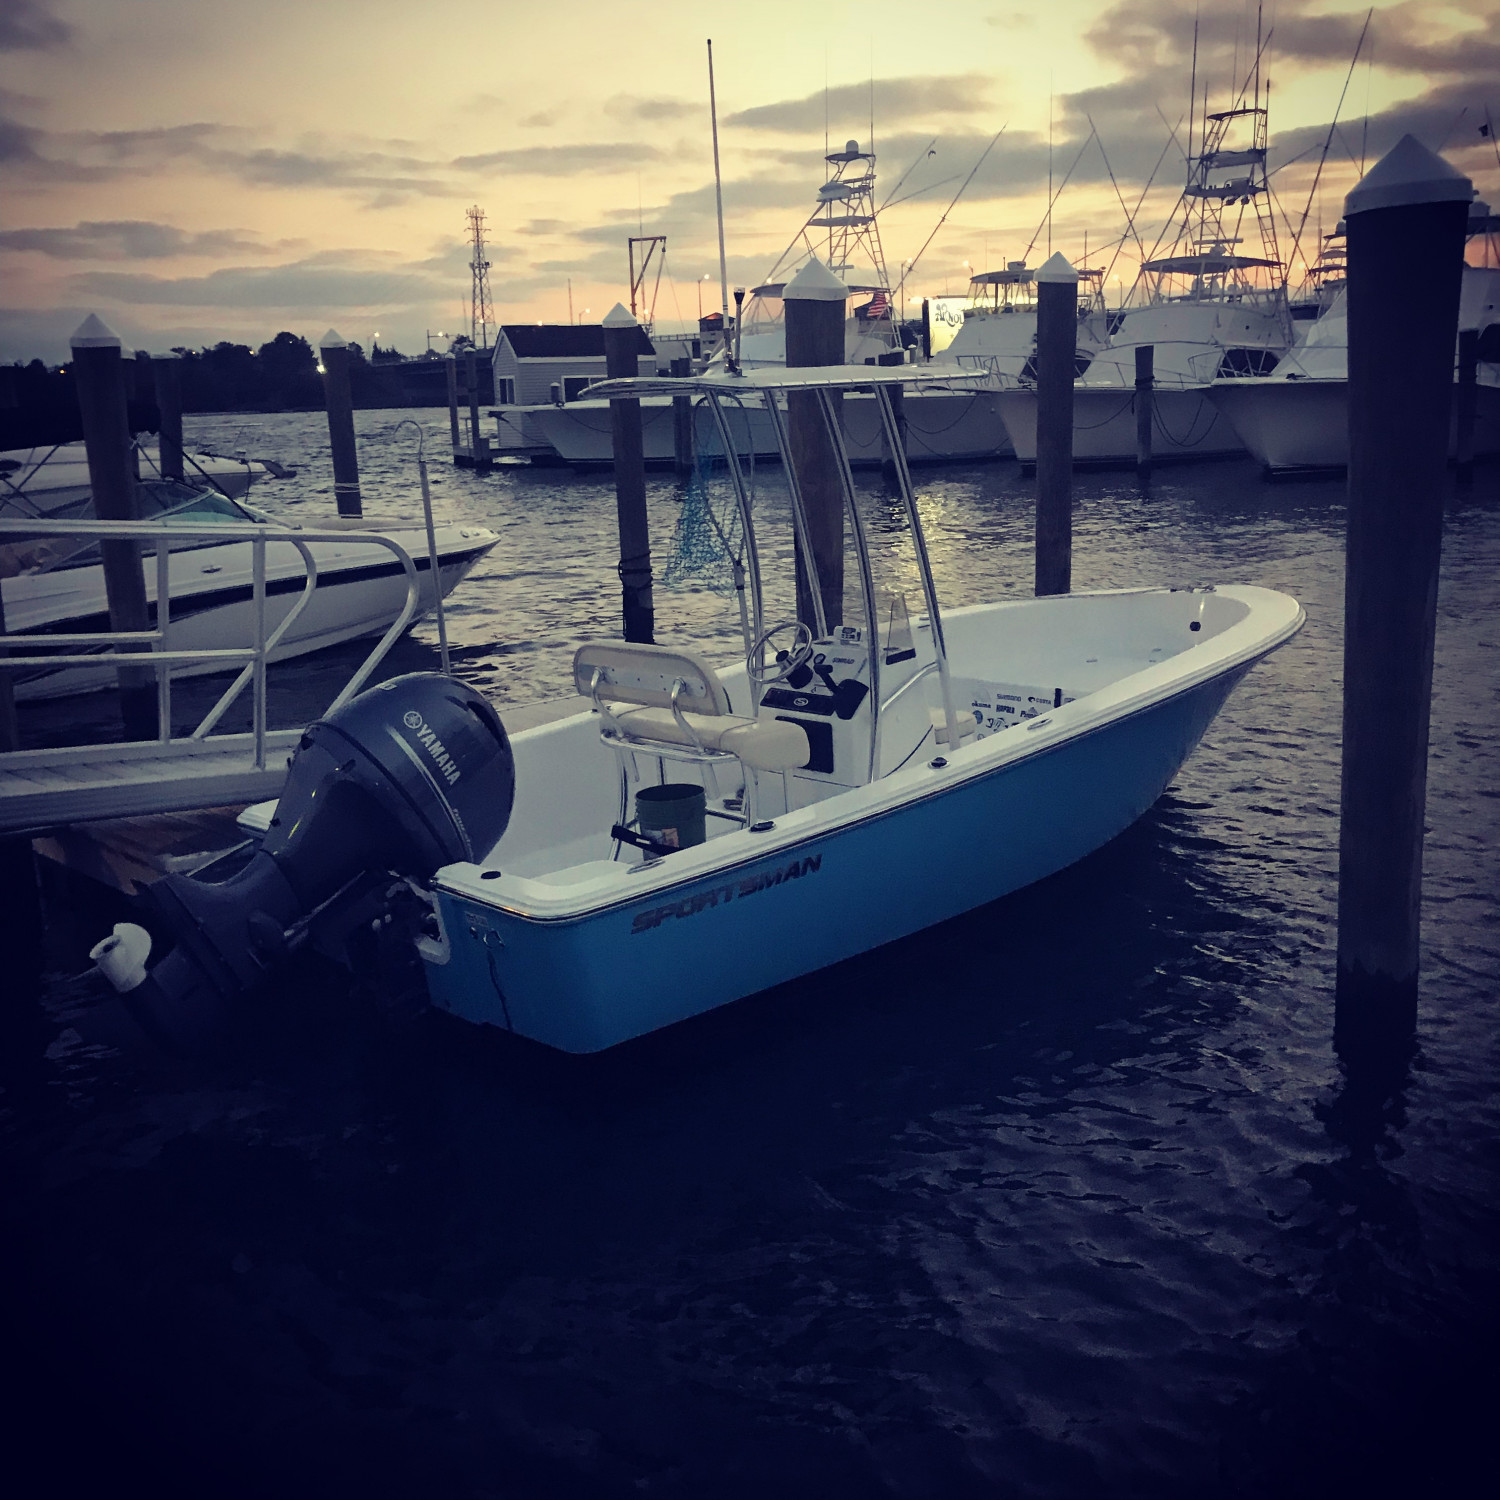 Title: Great sunset on the Manasquan river - On board their Sportsman Island Reef 19 Center Console - Location: Brielle. Participating in the Photo Contest #SportsmanDecember2017